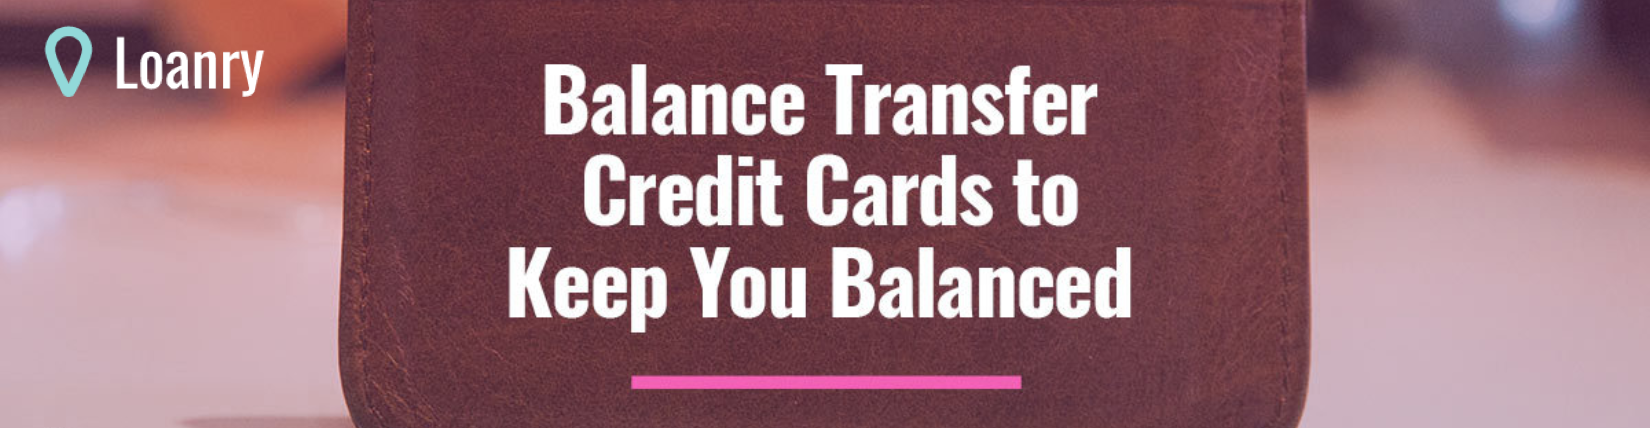 Balance Transfer Credit Cards on Loanry